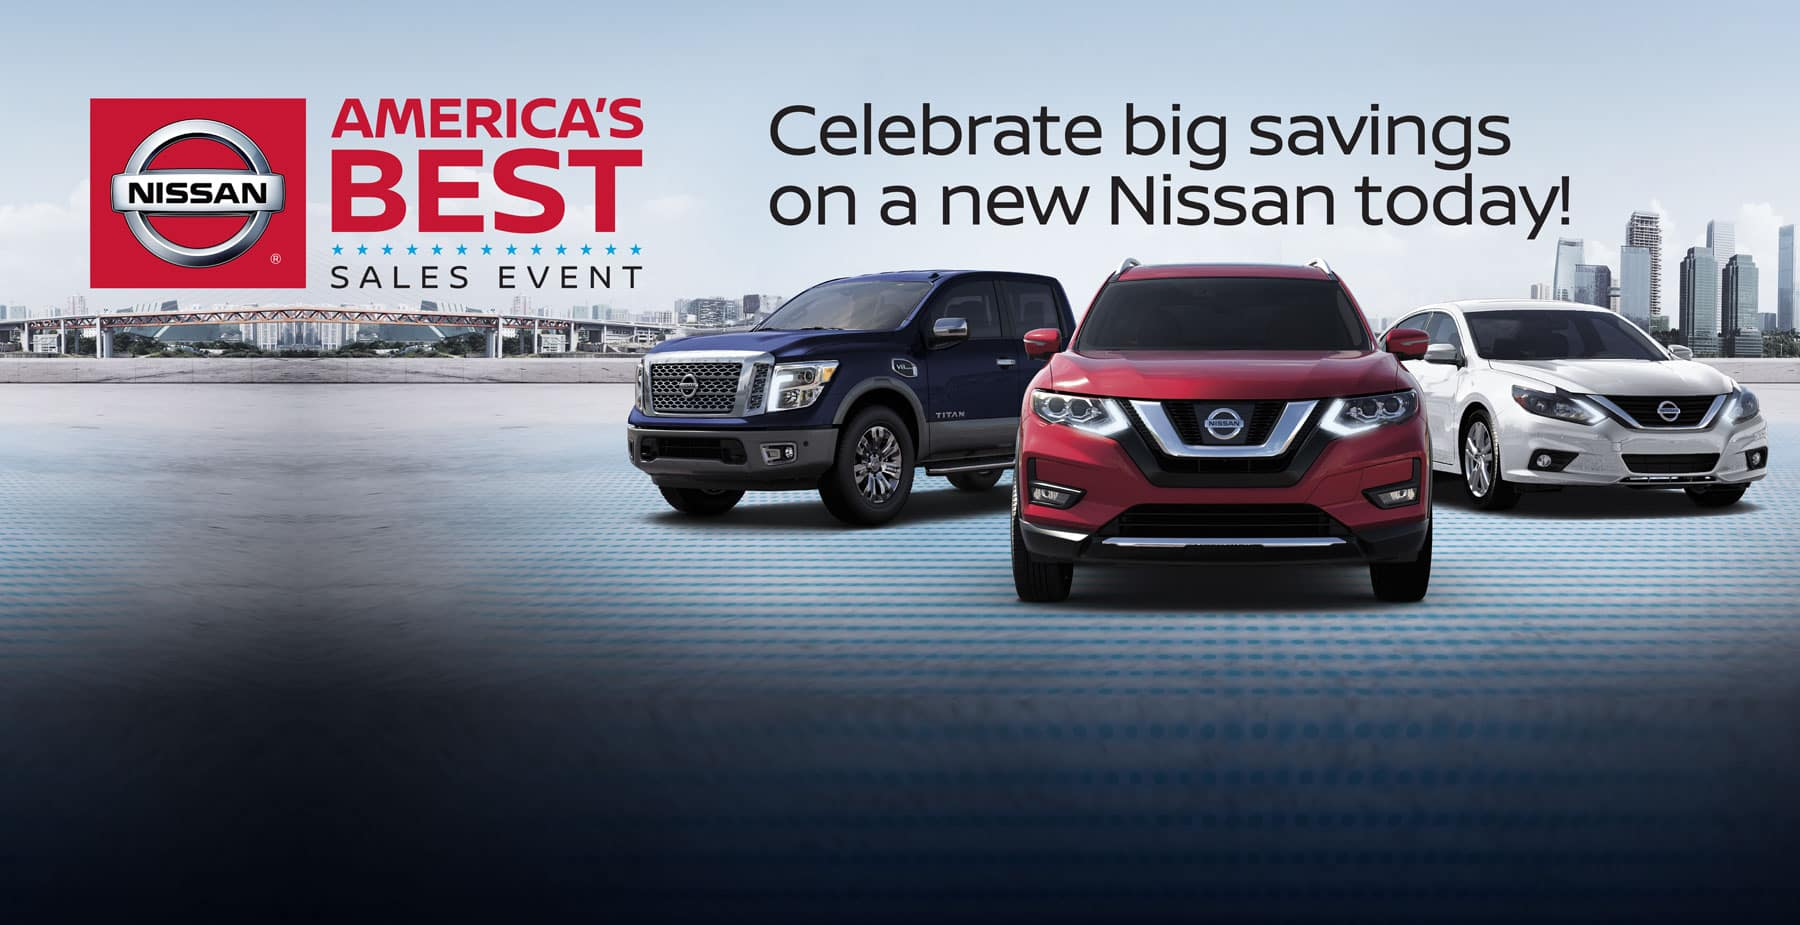 Celebrate BIG Savings on a New Nissan today during the America's Best Sales Event at Star Nissan!